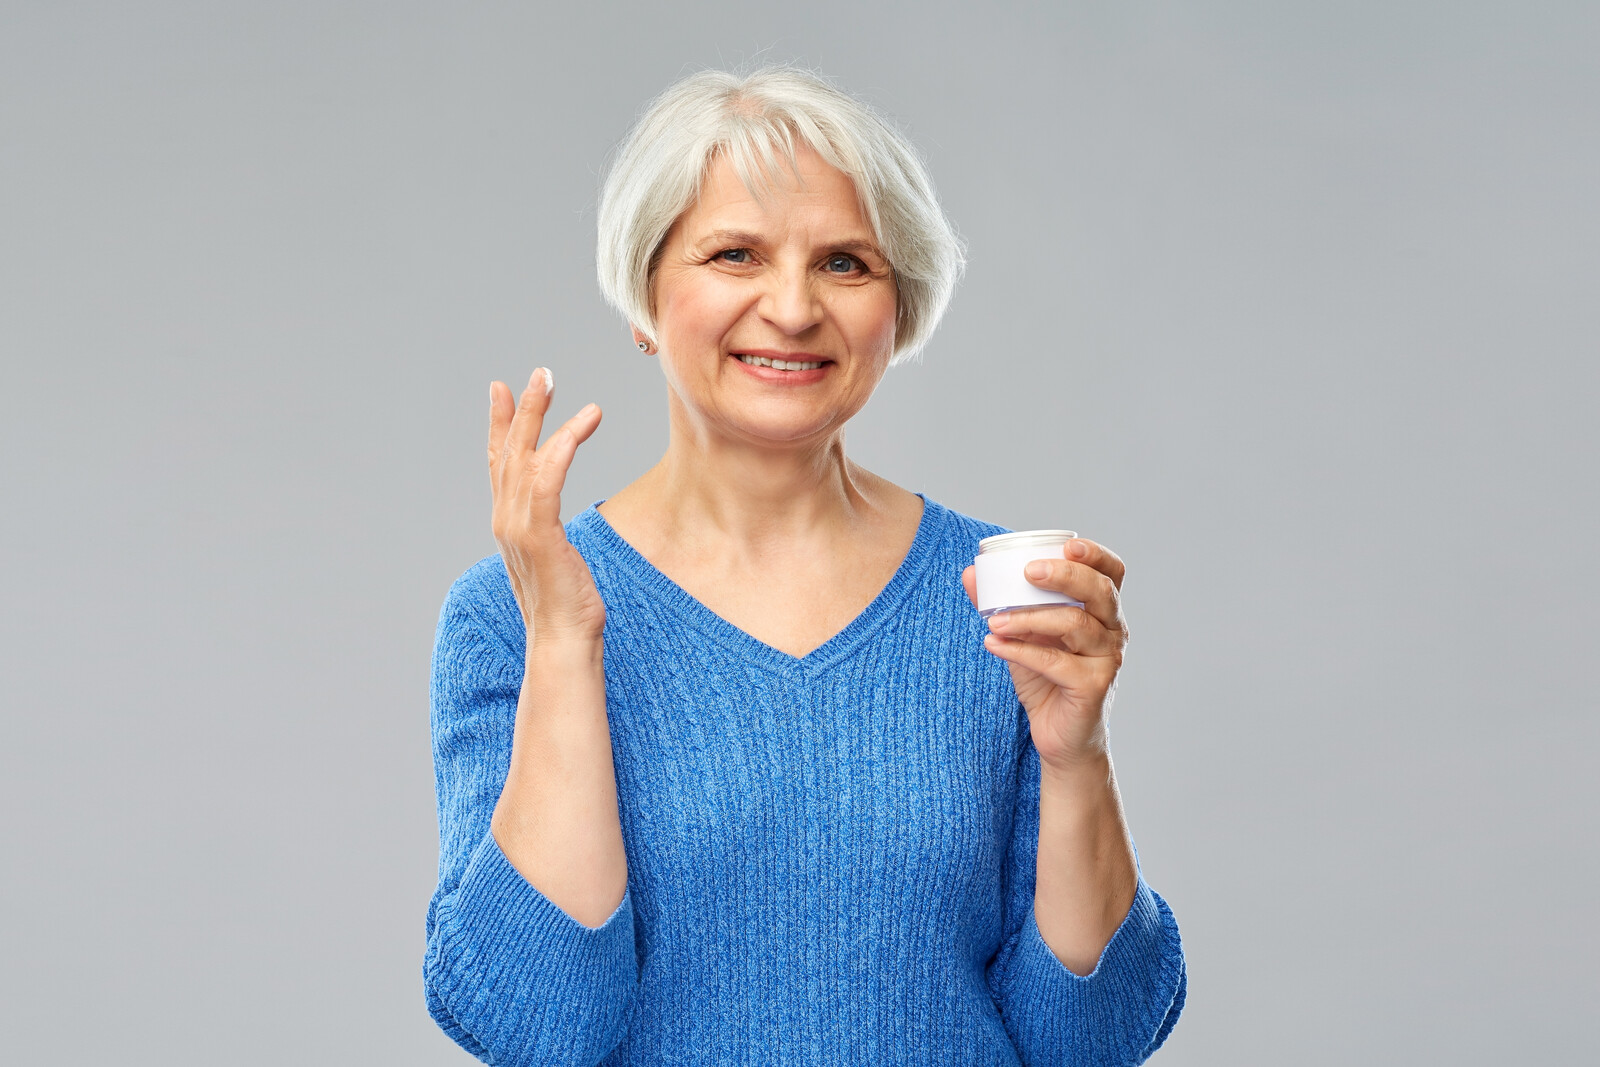 Smiling senior woman holding a jar of anti-aging cream with some on her finger tips ready to apply